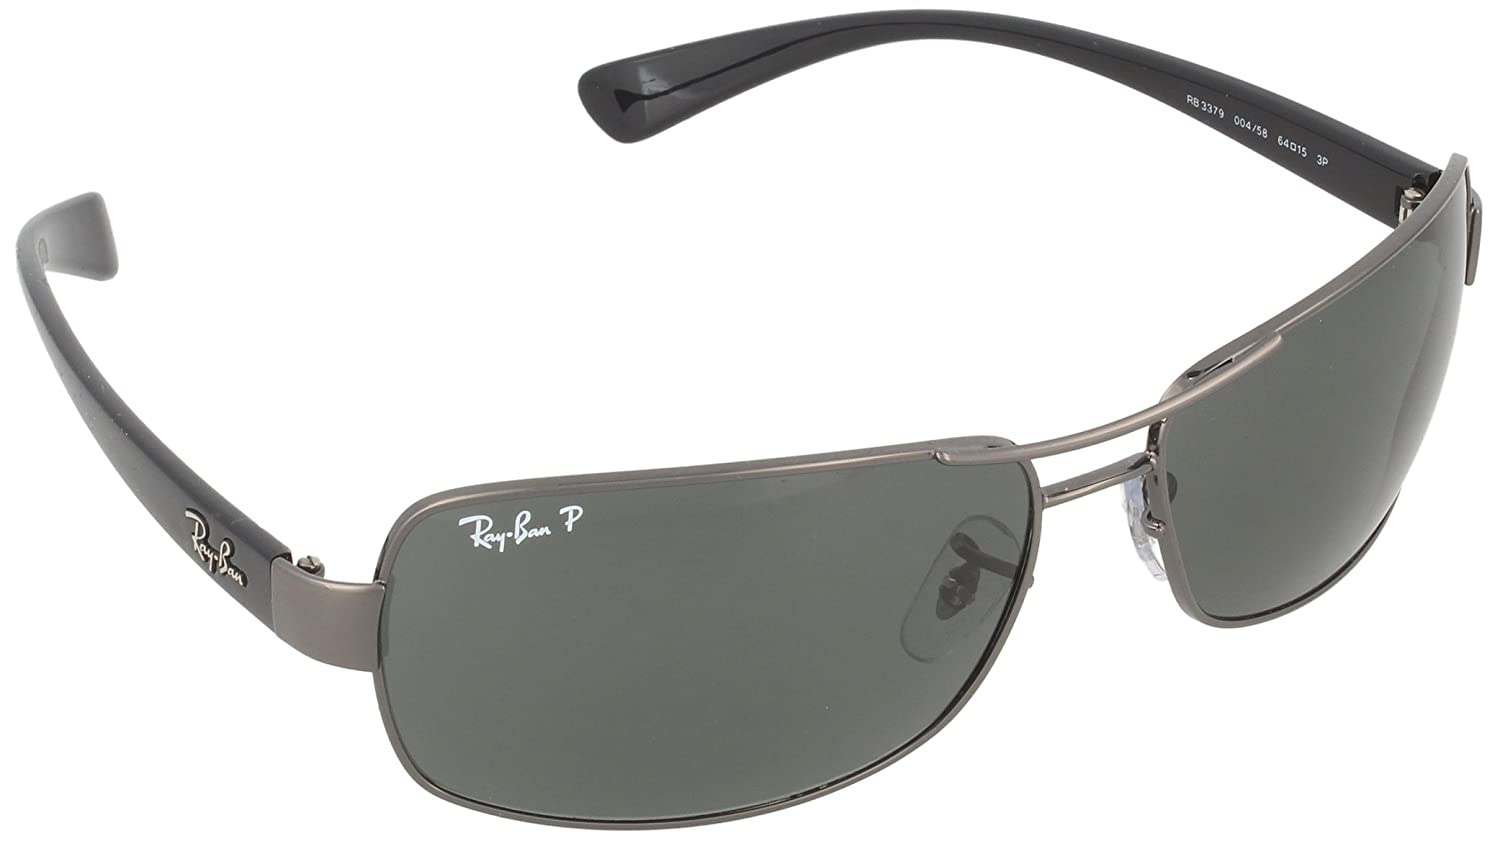 01828ea329 Amazon.com  Ray-Ban Men s 0rb3379-01004 58 64rb3379 Rectangular Sunglasses